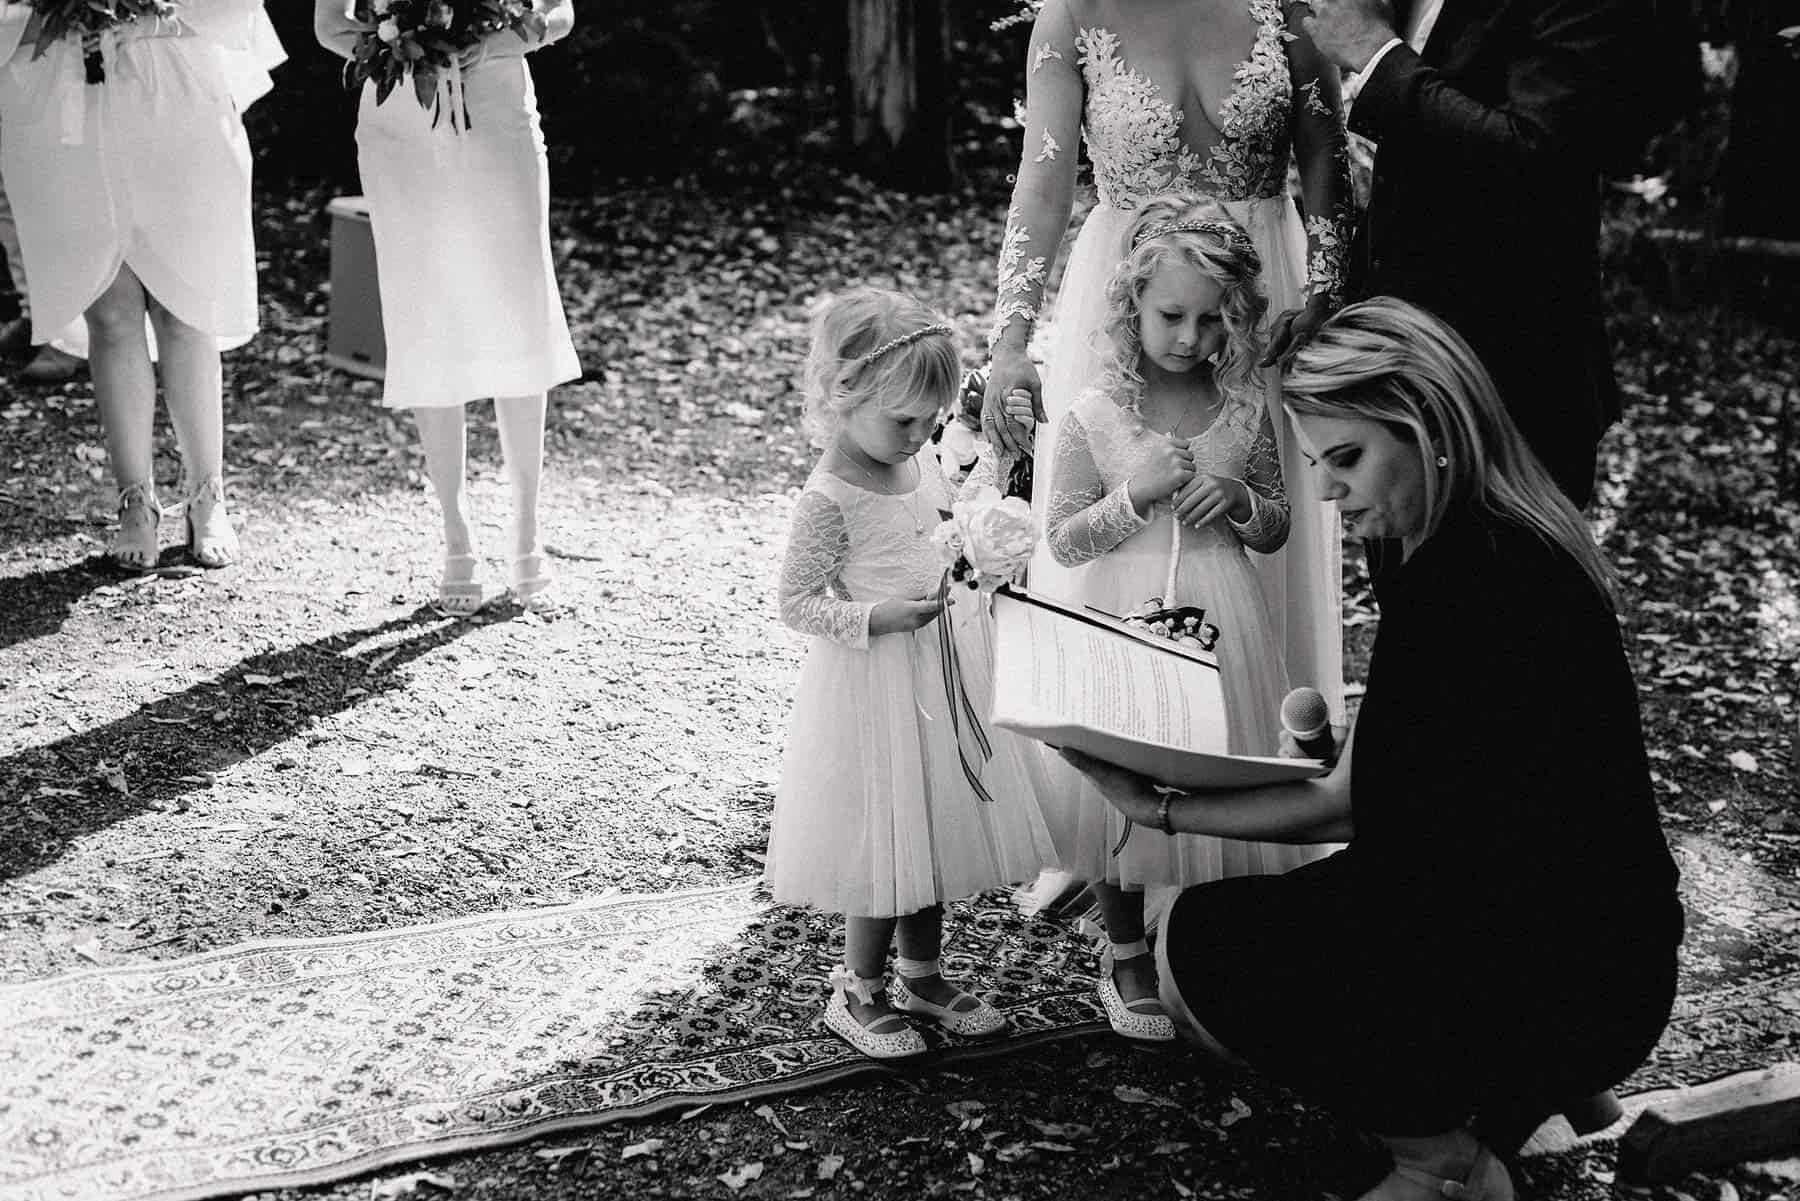 Celebrant includes flower girls in ceremony at rustic forest wedding